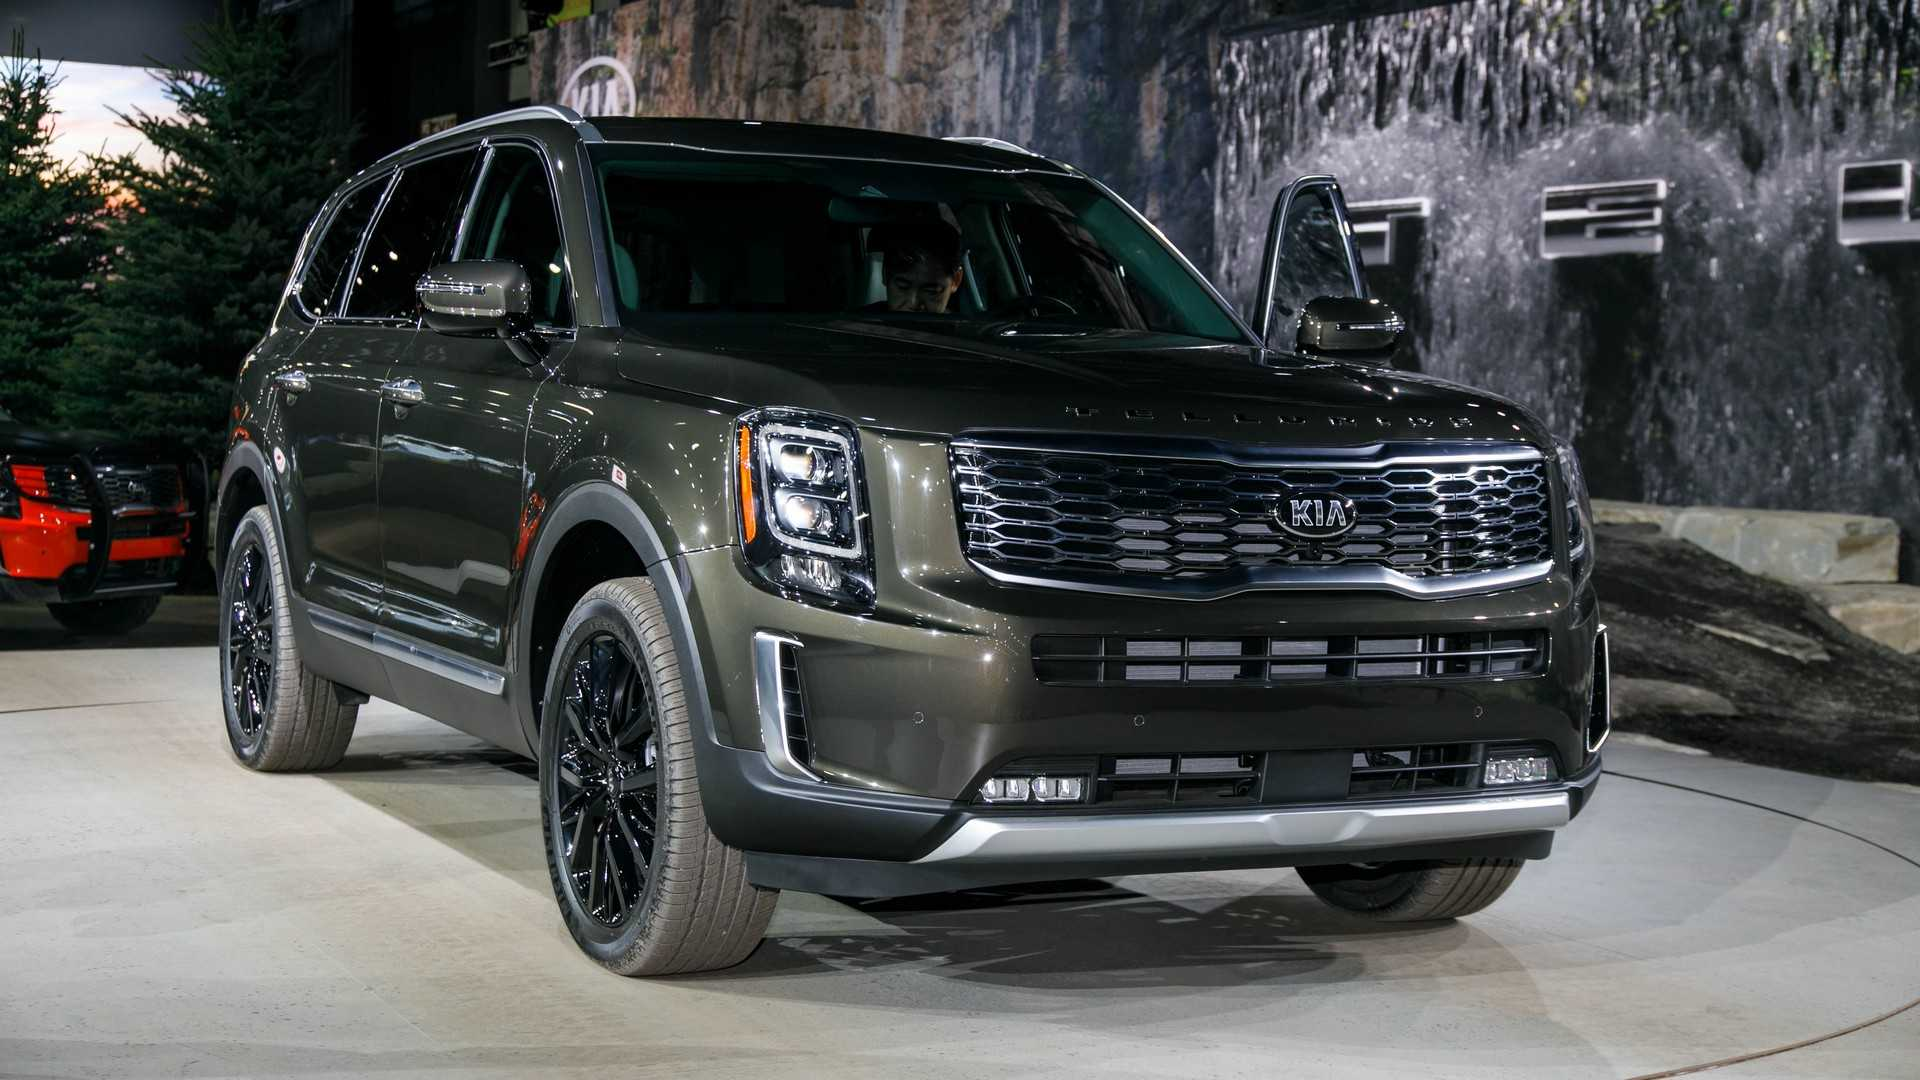 98 Best Kia Telluride 2020 Specs Reviews